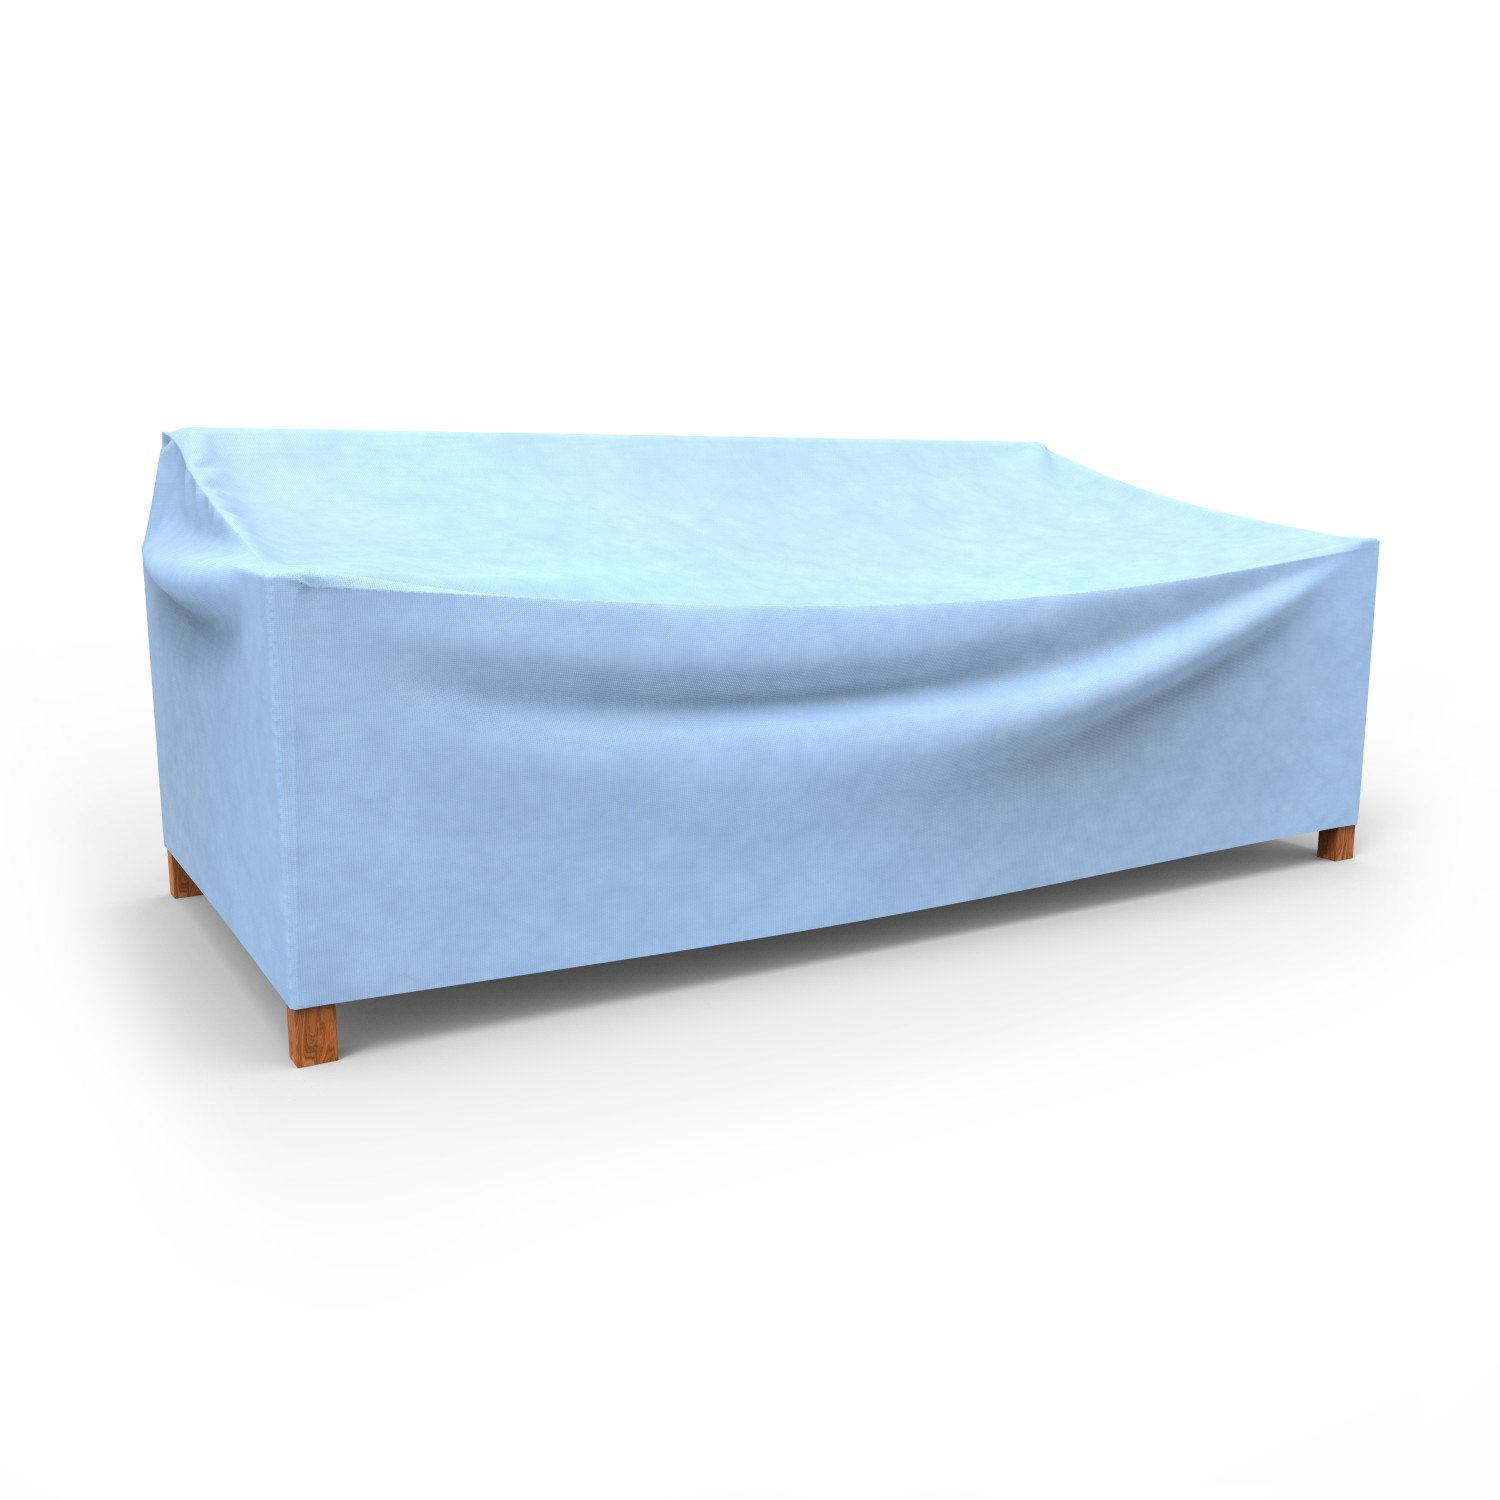 Budge All-Seasons Large Outdoor Loveseat Cover P3W06BG1, Blue (35 H x 58 W x 38 D) Budge Industries